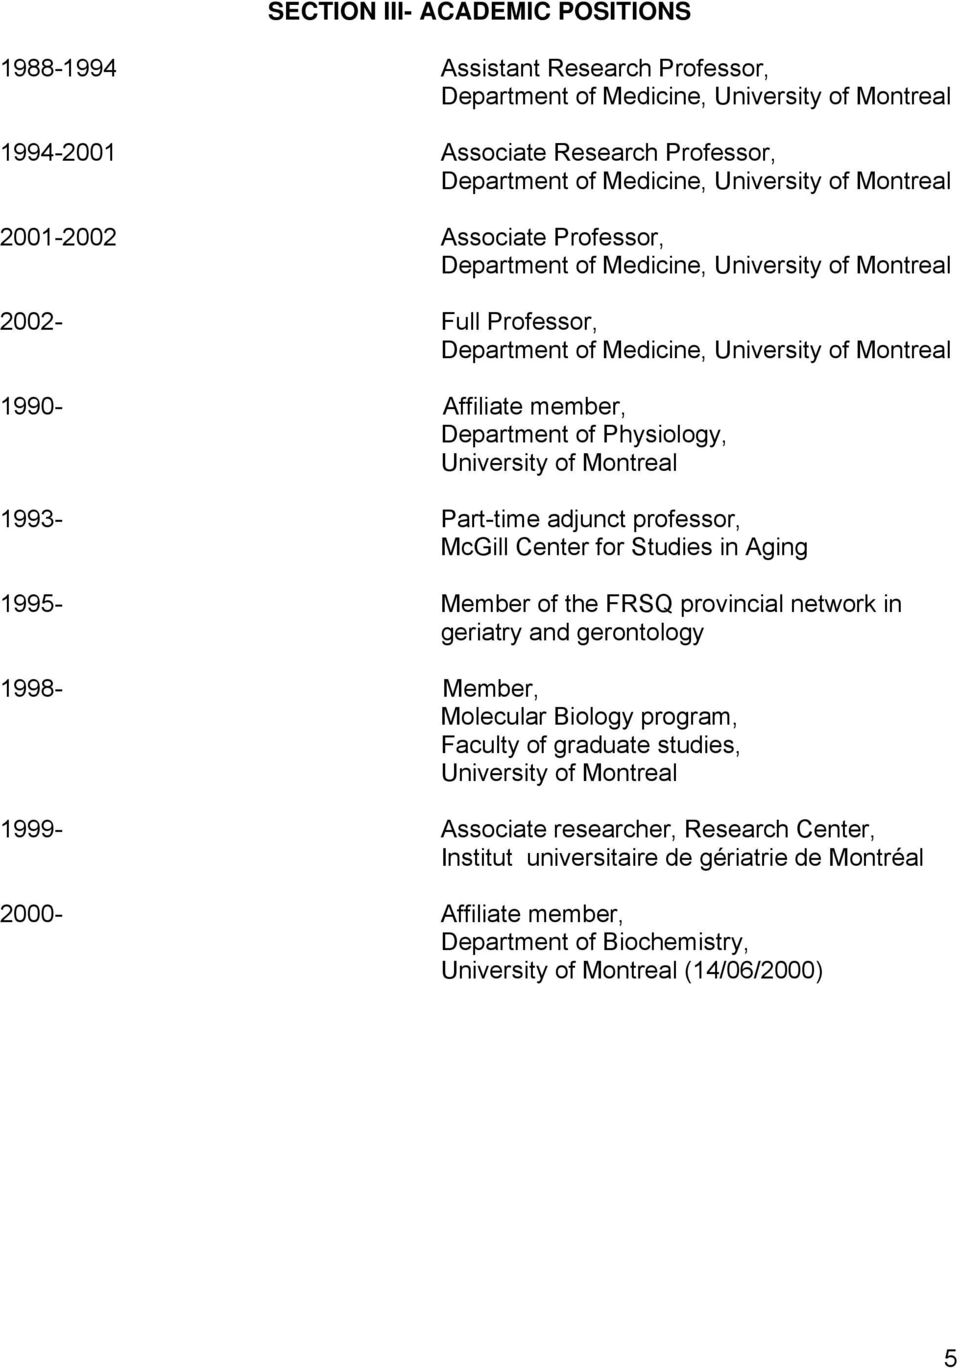 Physiology, University of Montreal 1993- Part-time adjunct professor, McGill Center for Studies in Aging 1995- Member of the FRSQ provincial network in geriatry and gerontology 1998- Member,